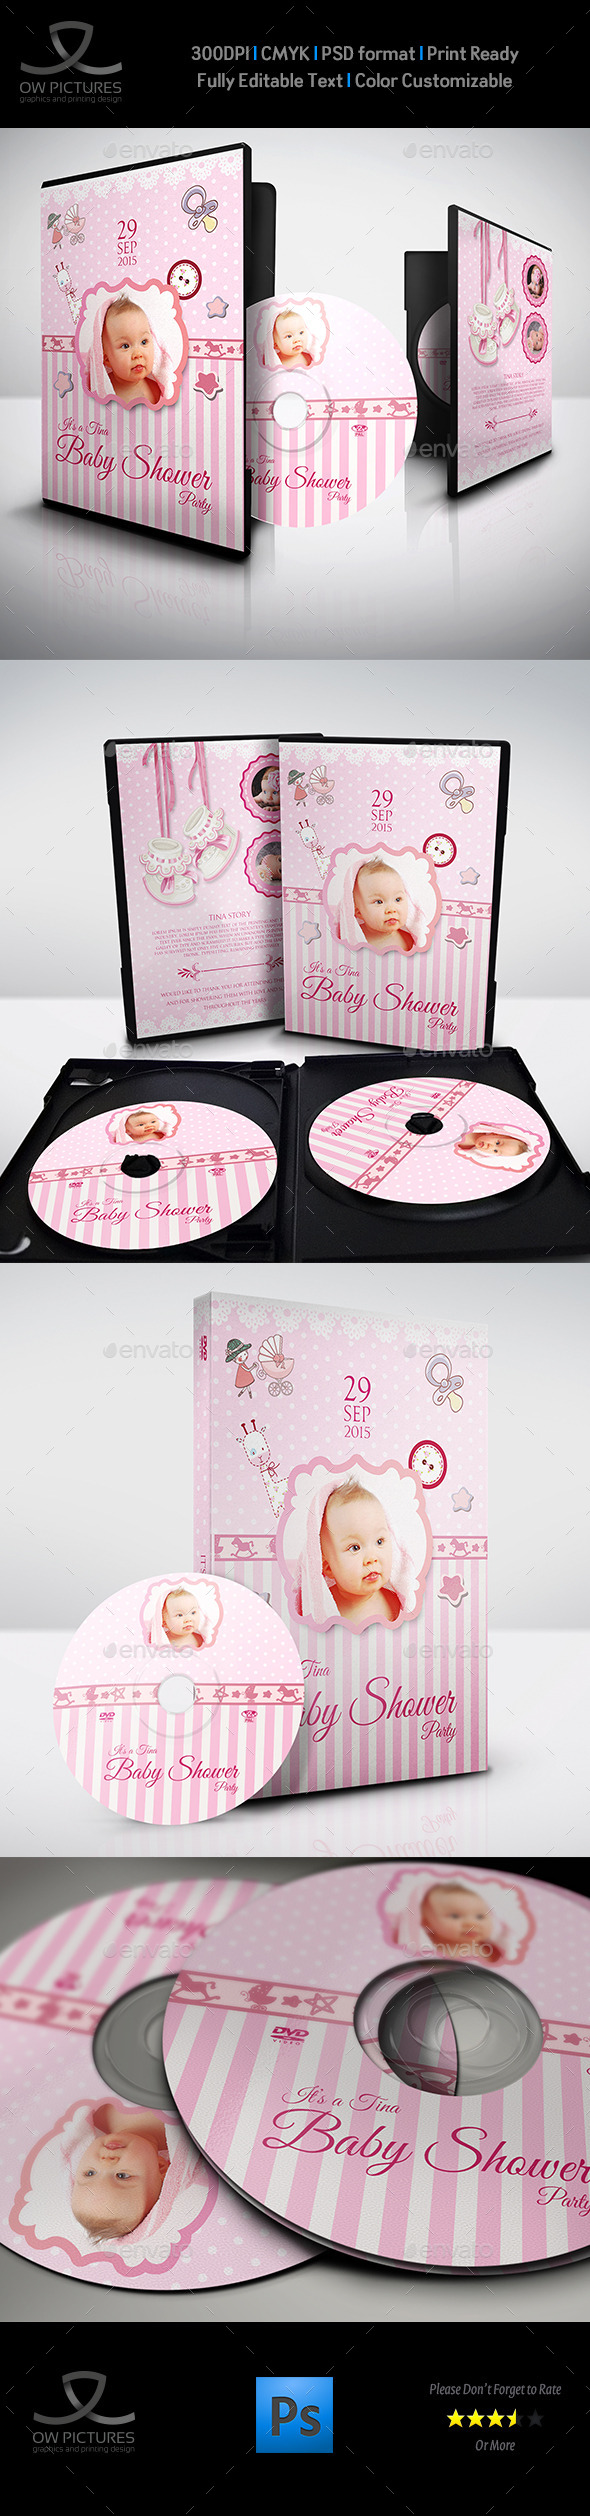 Baby Shower Party DVD Template Vol.2 - CD & DVD Artwork Print Templates